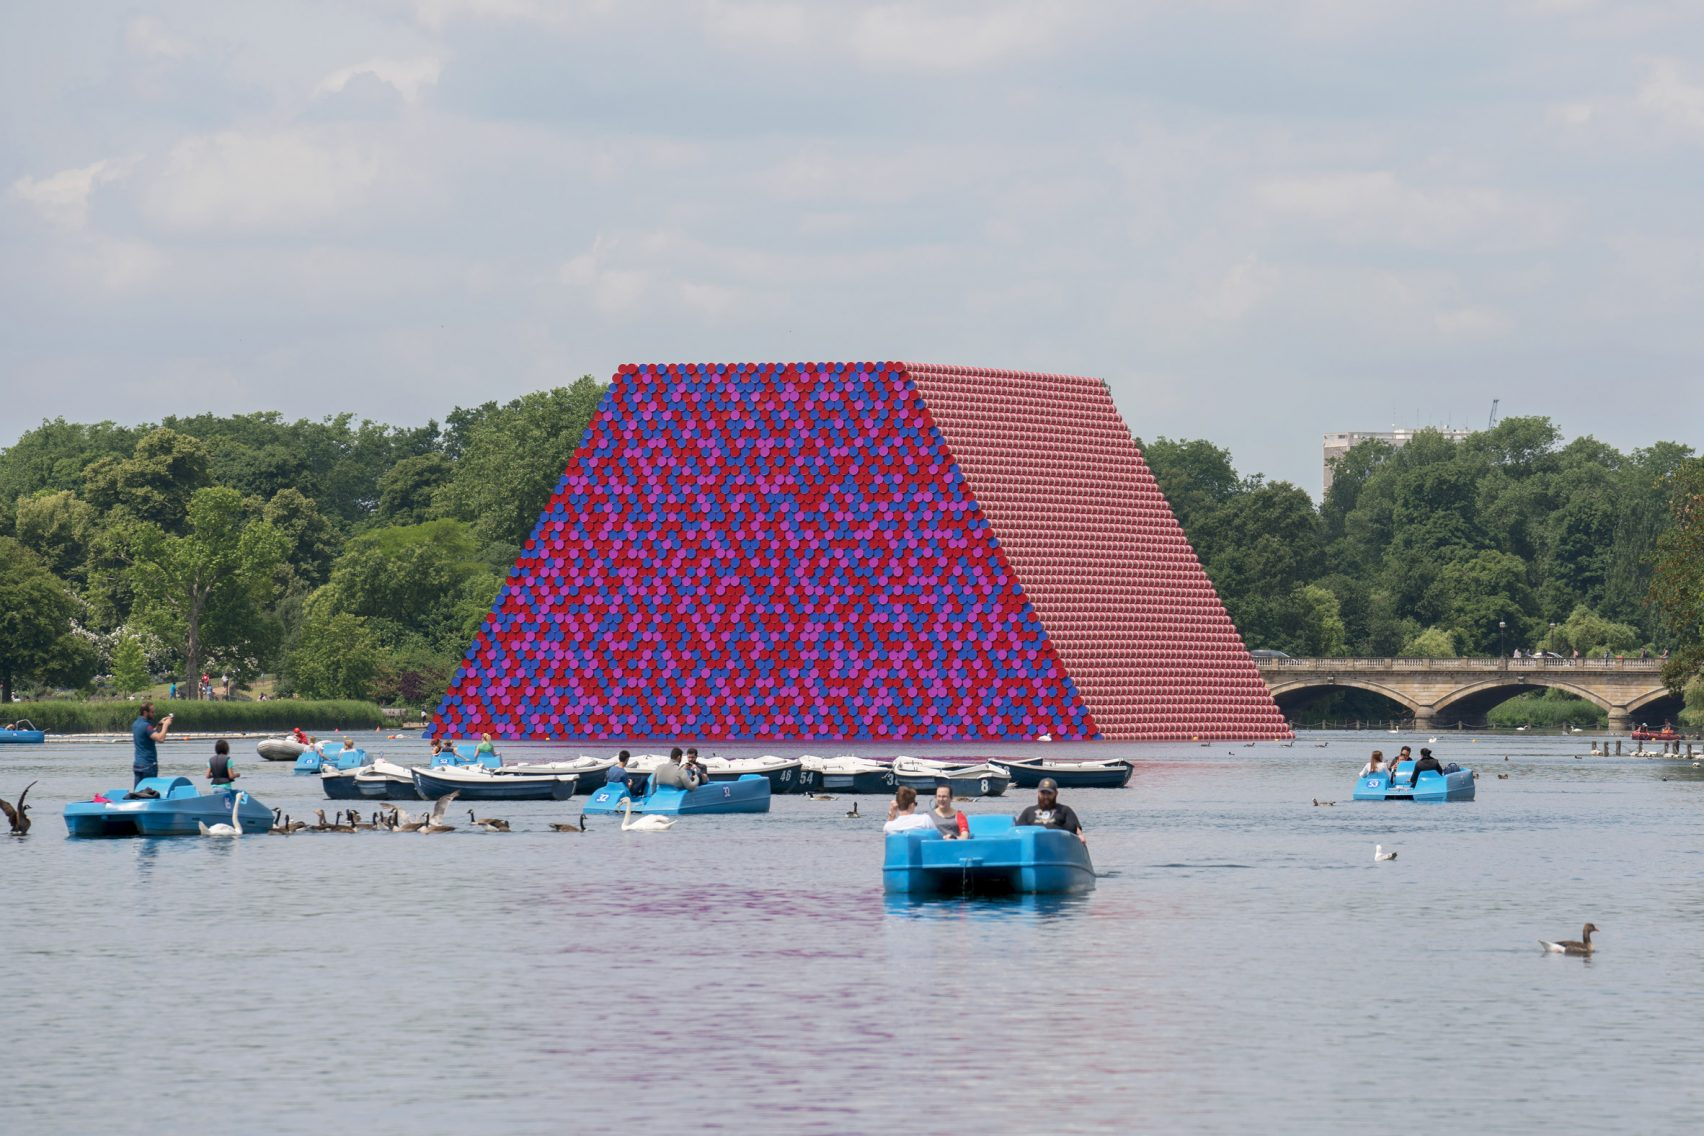 The London Mastaba por Christo